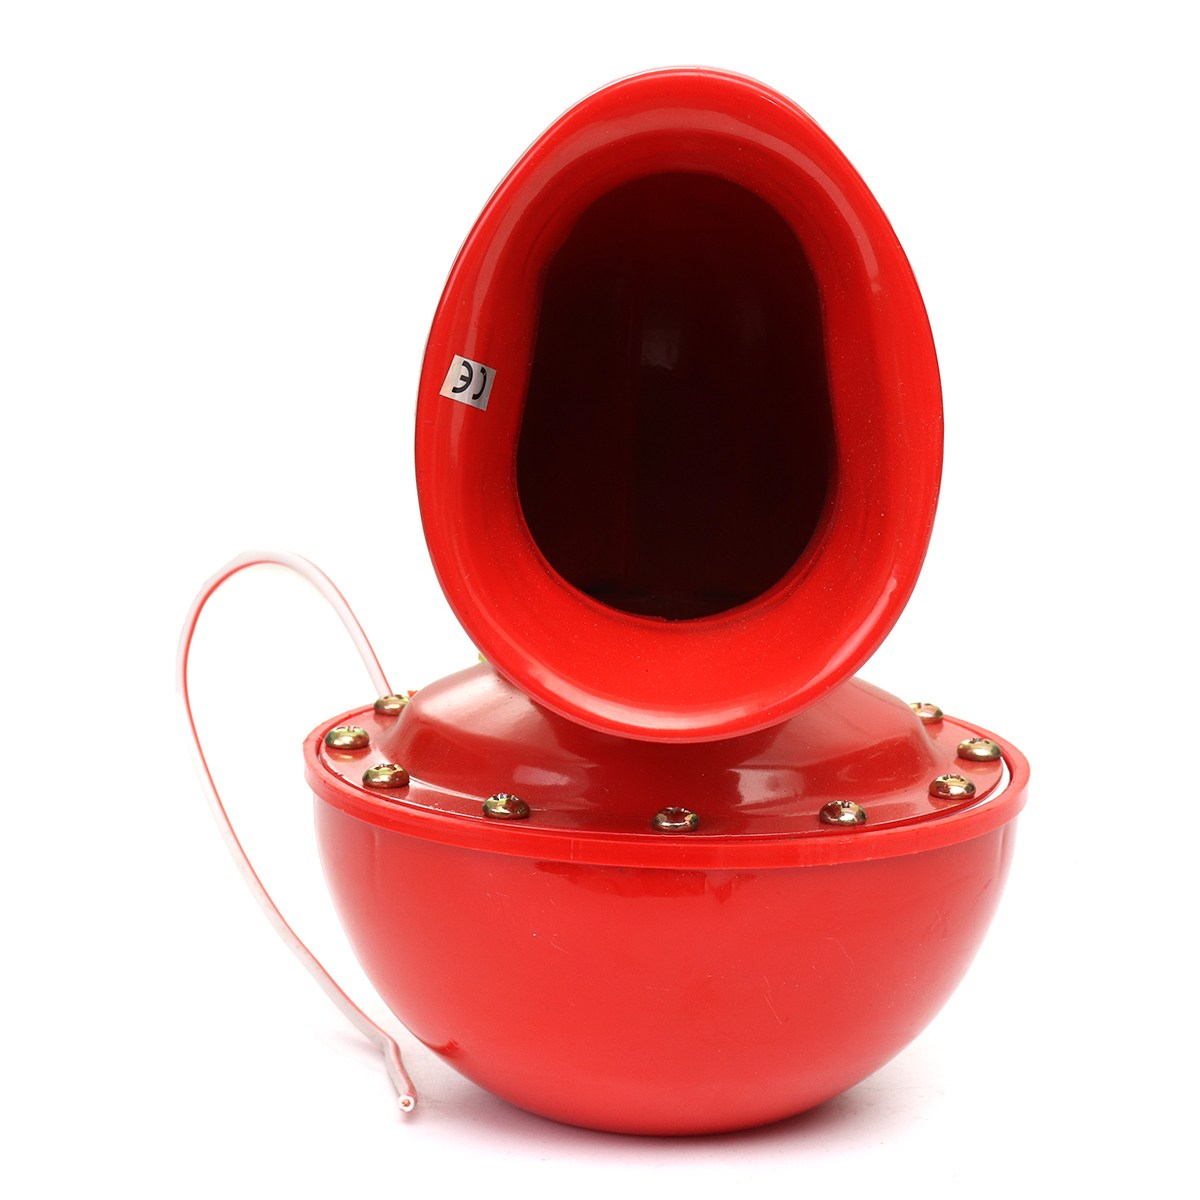 8A 12V 115dB 175Hz Red Metal Electric Bull Horn Super Loud Raging Sound For Car Motorcycle Truck Boat ...